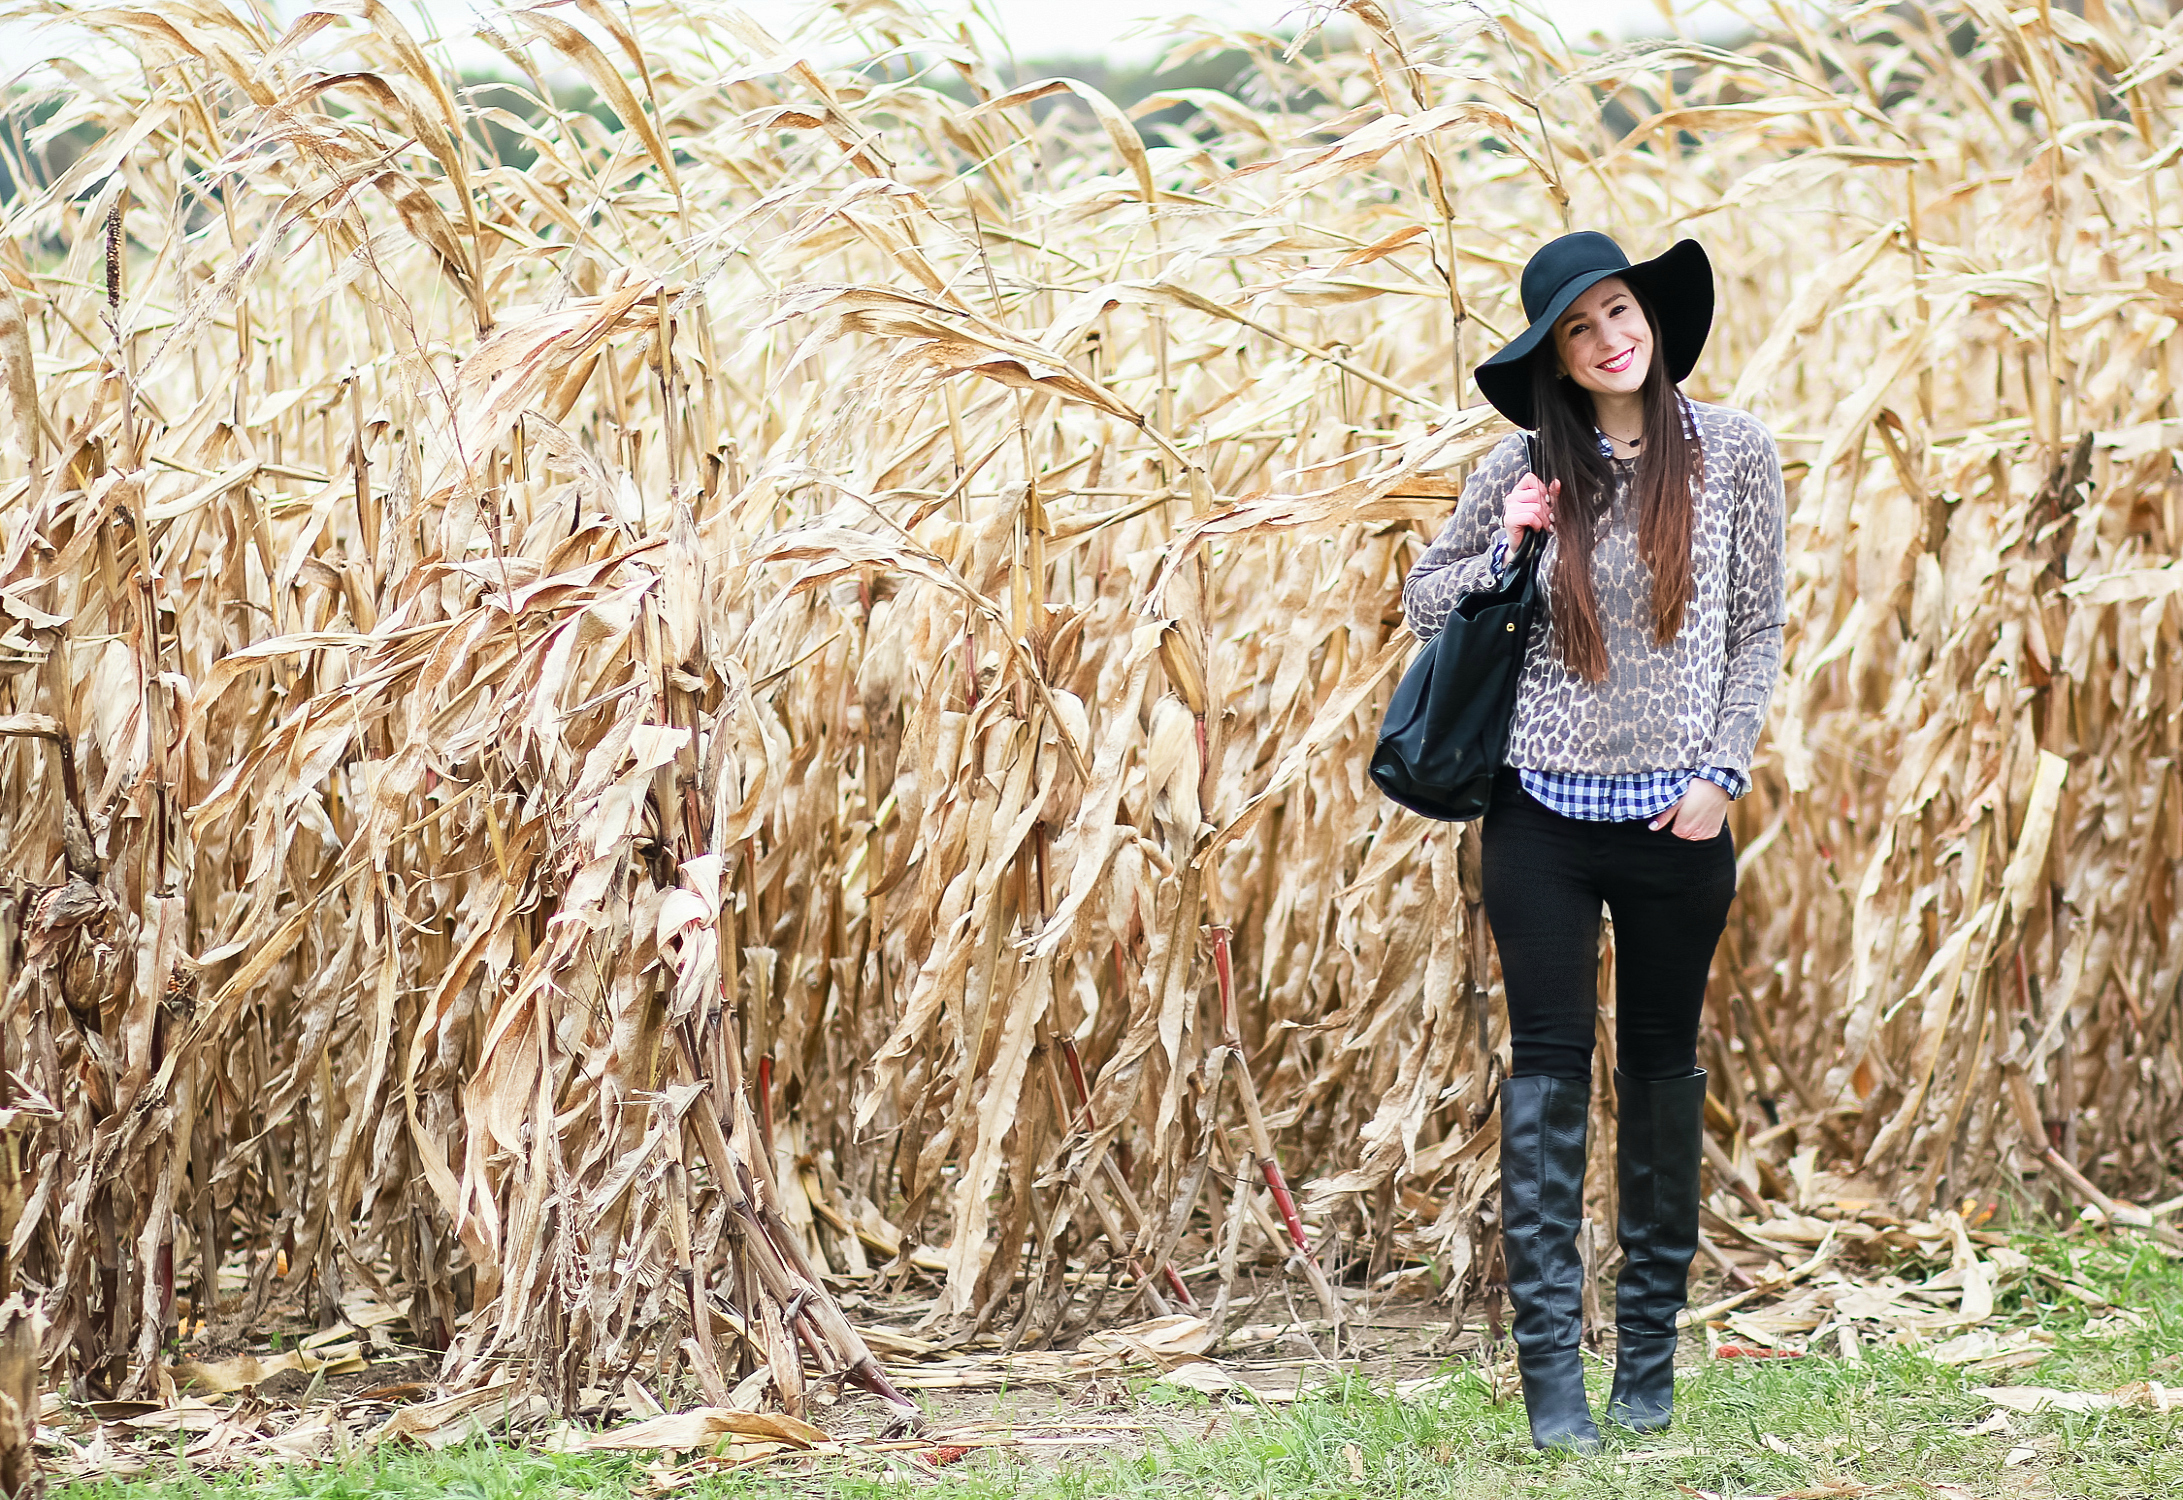 Black floppy hat with leopard crewneck sweater, J.Crew Factory blue gingham button down, black jeans, Nine West tall black boots, and a Tory Burch Ella tote | Comfy and casual fall outfit idea | How to wear a floppy hat in the fall by fashion blogger Stephanie Ziajka from Diary of a Debutante